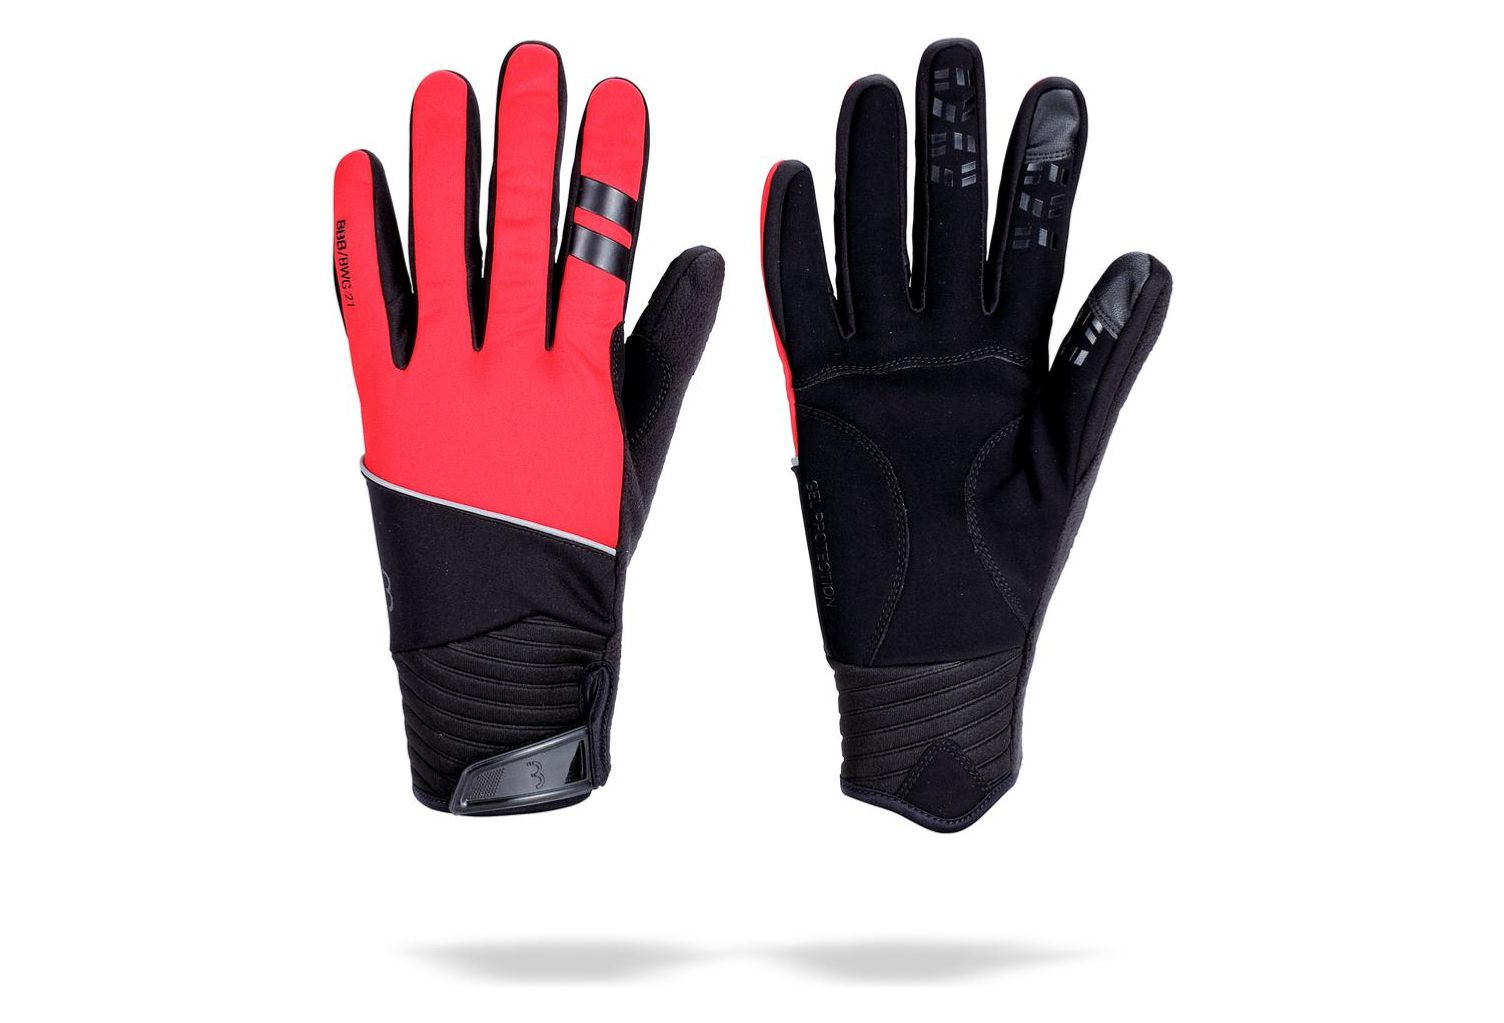 BBB Gants hiver ControlZone Rouge